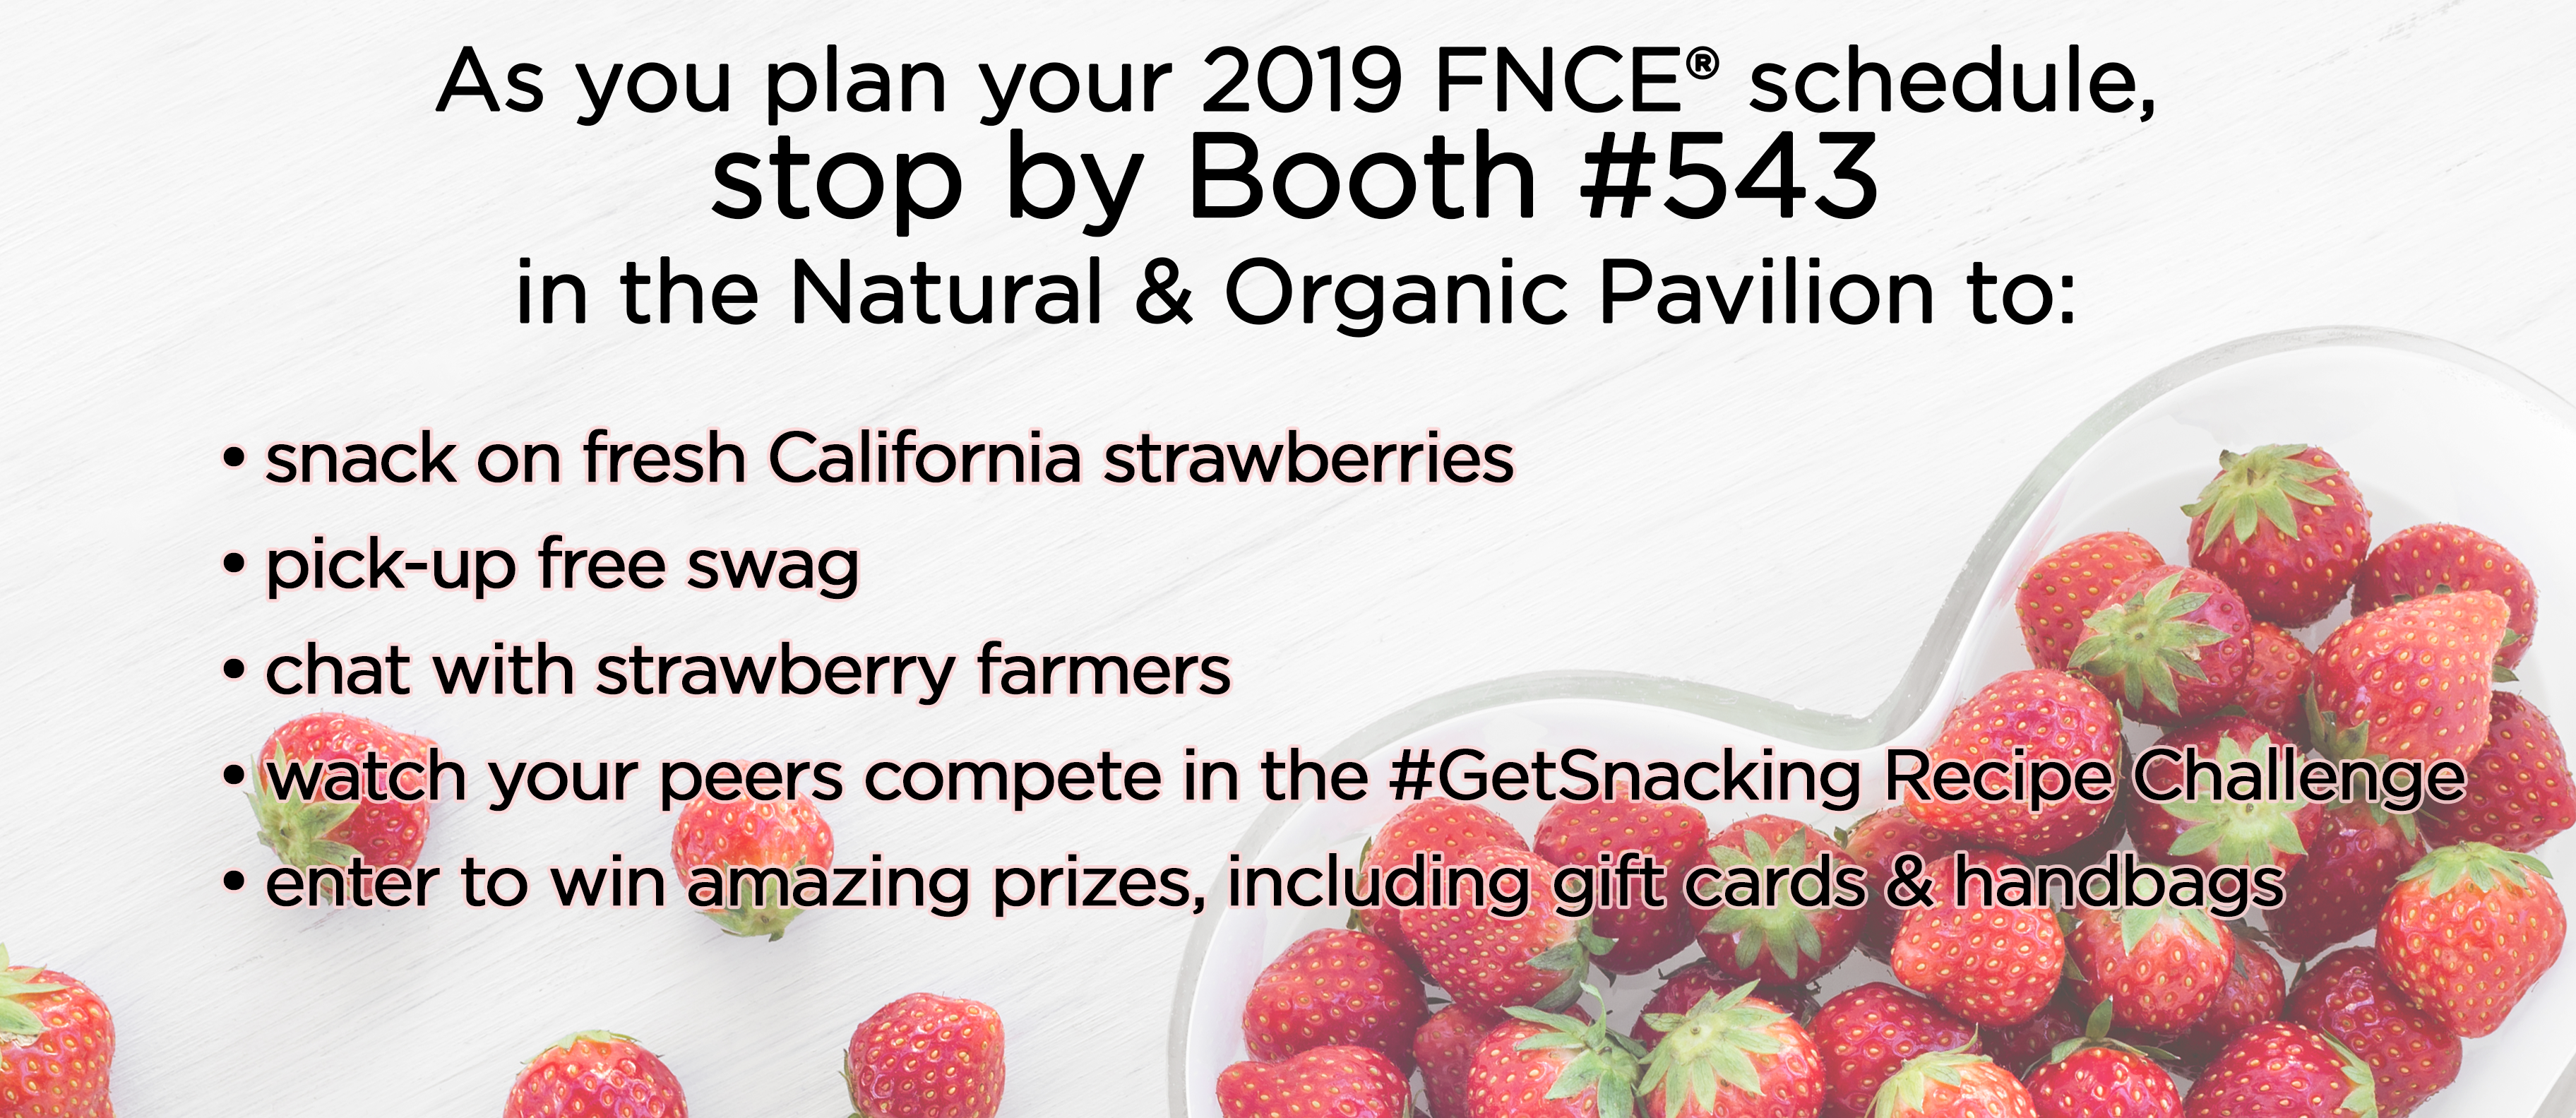 As you plan your 2019 FNCE® schedule, stop by Booth #543 in the Natural & Organic Pavilion to: snack on fresh California Strawberries | pick-up free swag | chat with strawberry farmers | watch your peers compete in the #GetSnacking Recipe Challenge | enter to win amazing prizes, including gift cards & handbags